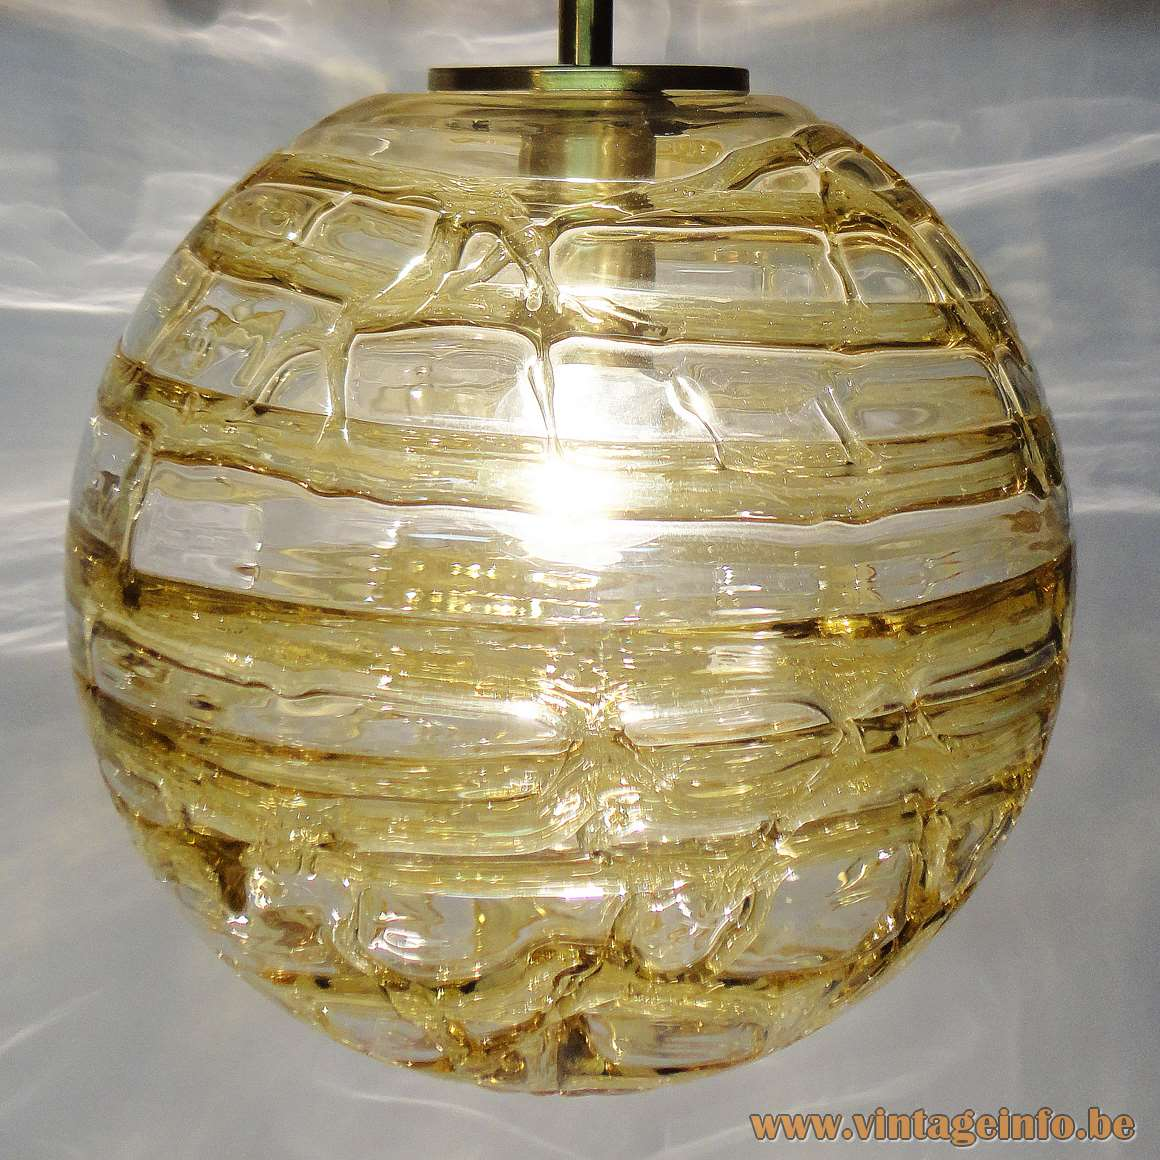 Doria pendant lamp globe clear & amber veined glass brass parts 1960s 1970s Germany MCM Mid-Century Modern